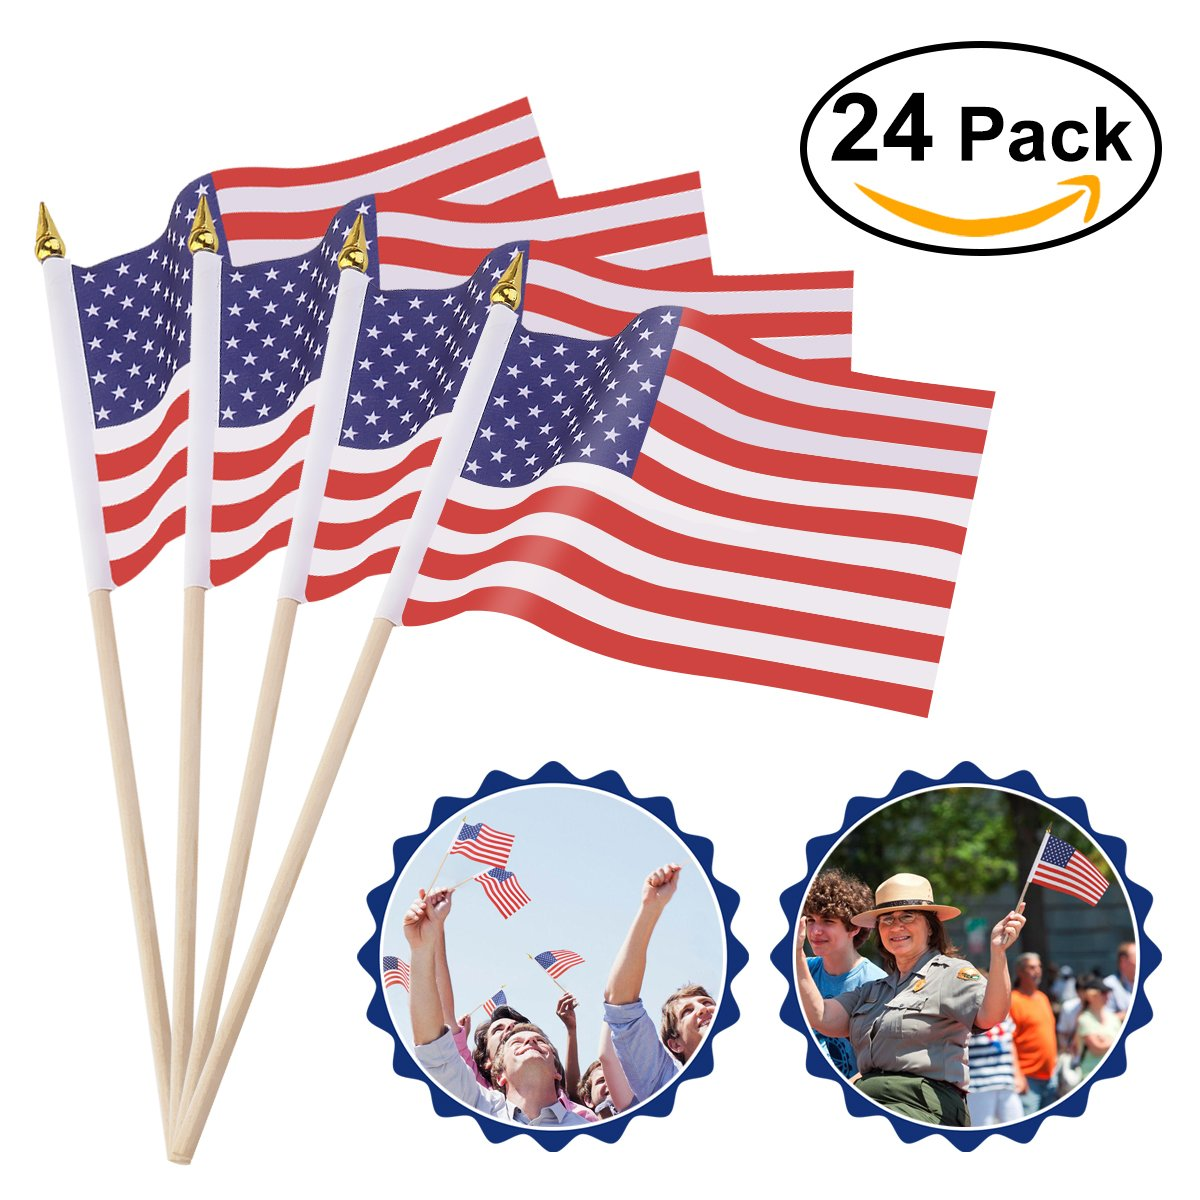 """OULII 24 Pack Mini American Flags Hand Held Mini US Flags on Stick with Gold-Capped 4"""" x 6"""""""